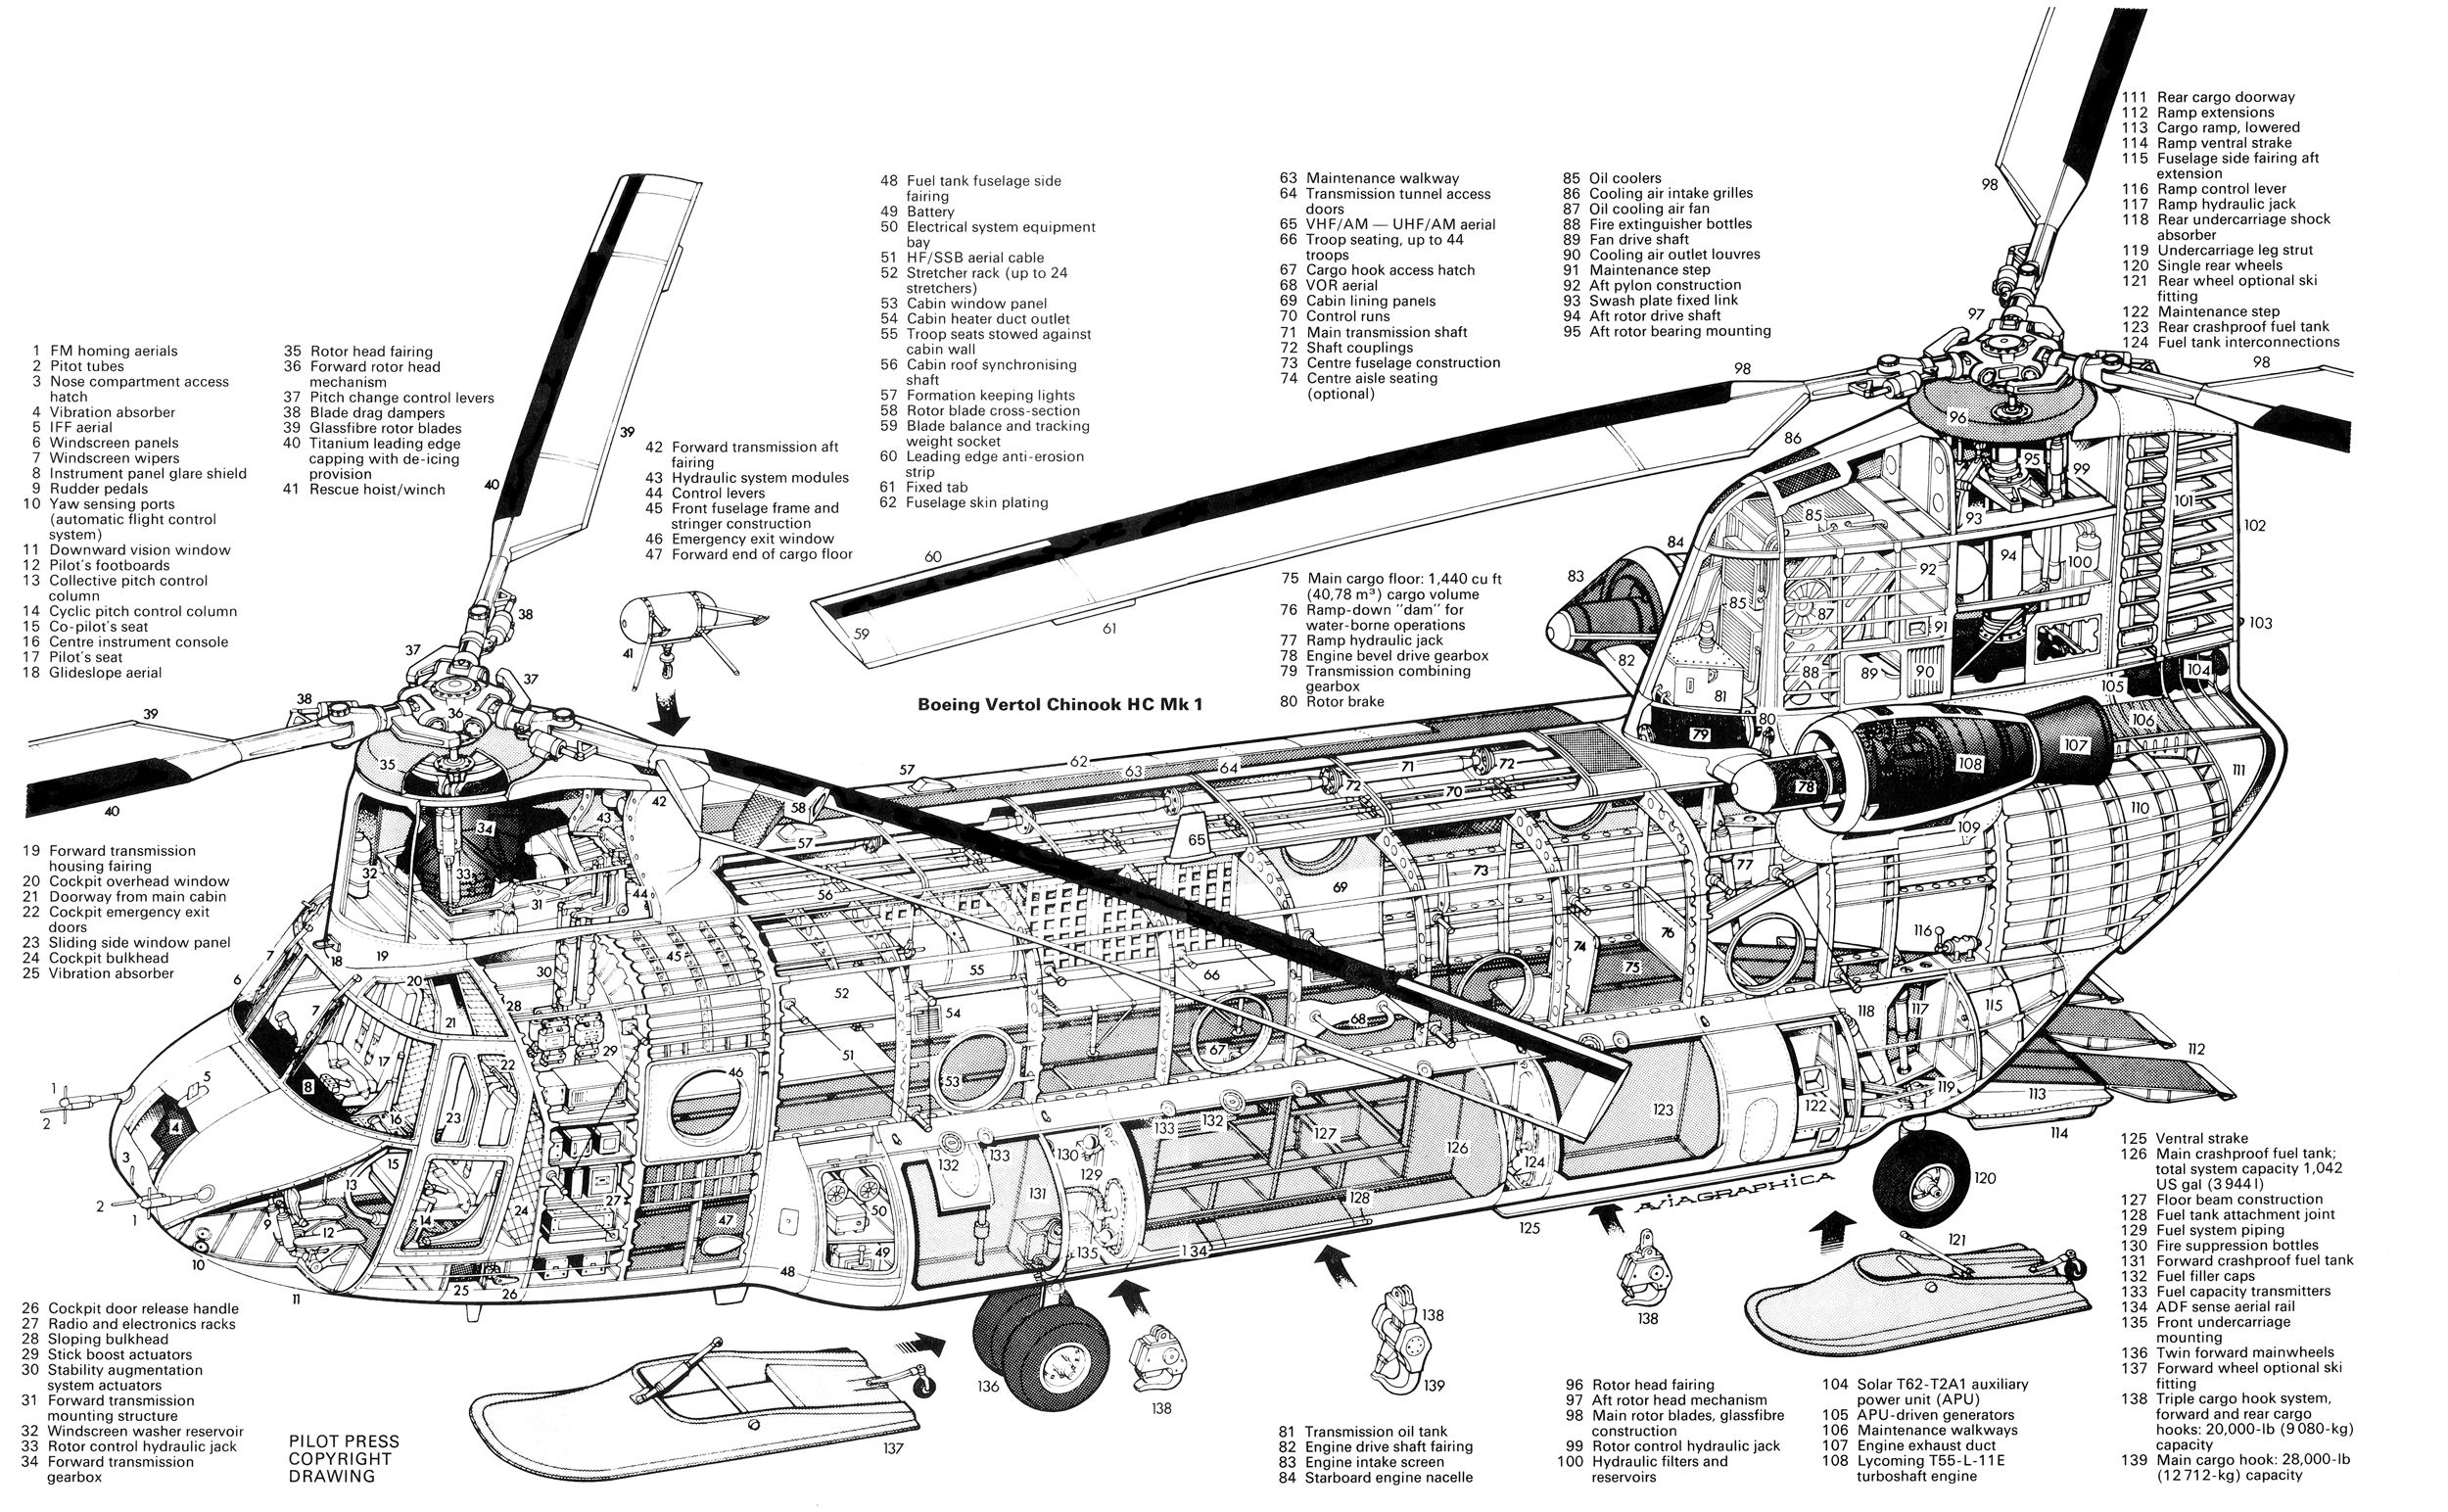 boeing ch 47 chinook chinook helicopters attack helicopter military helicopter military aircraft [ 2500 x 1544 Pixel ]